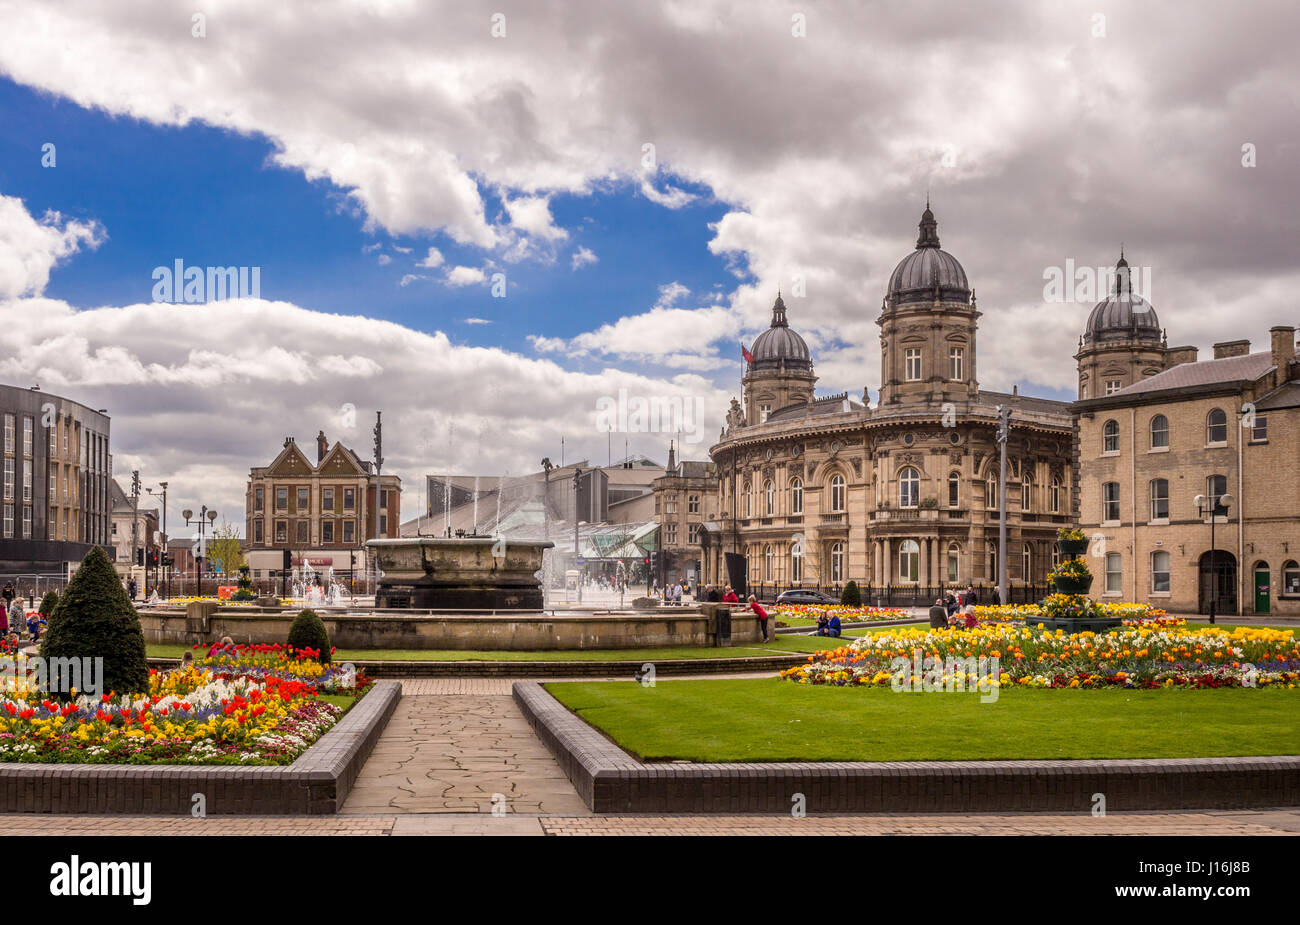 Rosebowl fountain and flower beds, Queen's Gardens, Hull. Maritime museum and Princes Quay shopping centre in - Stock Image